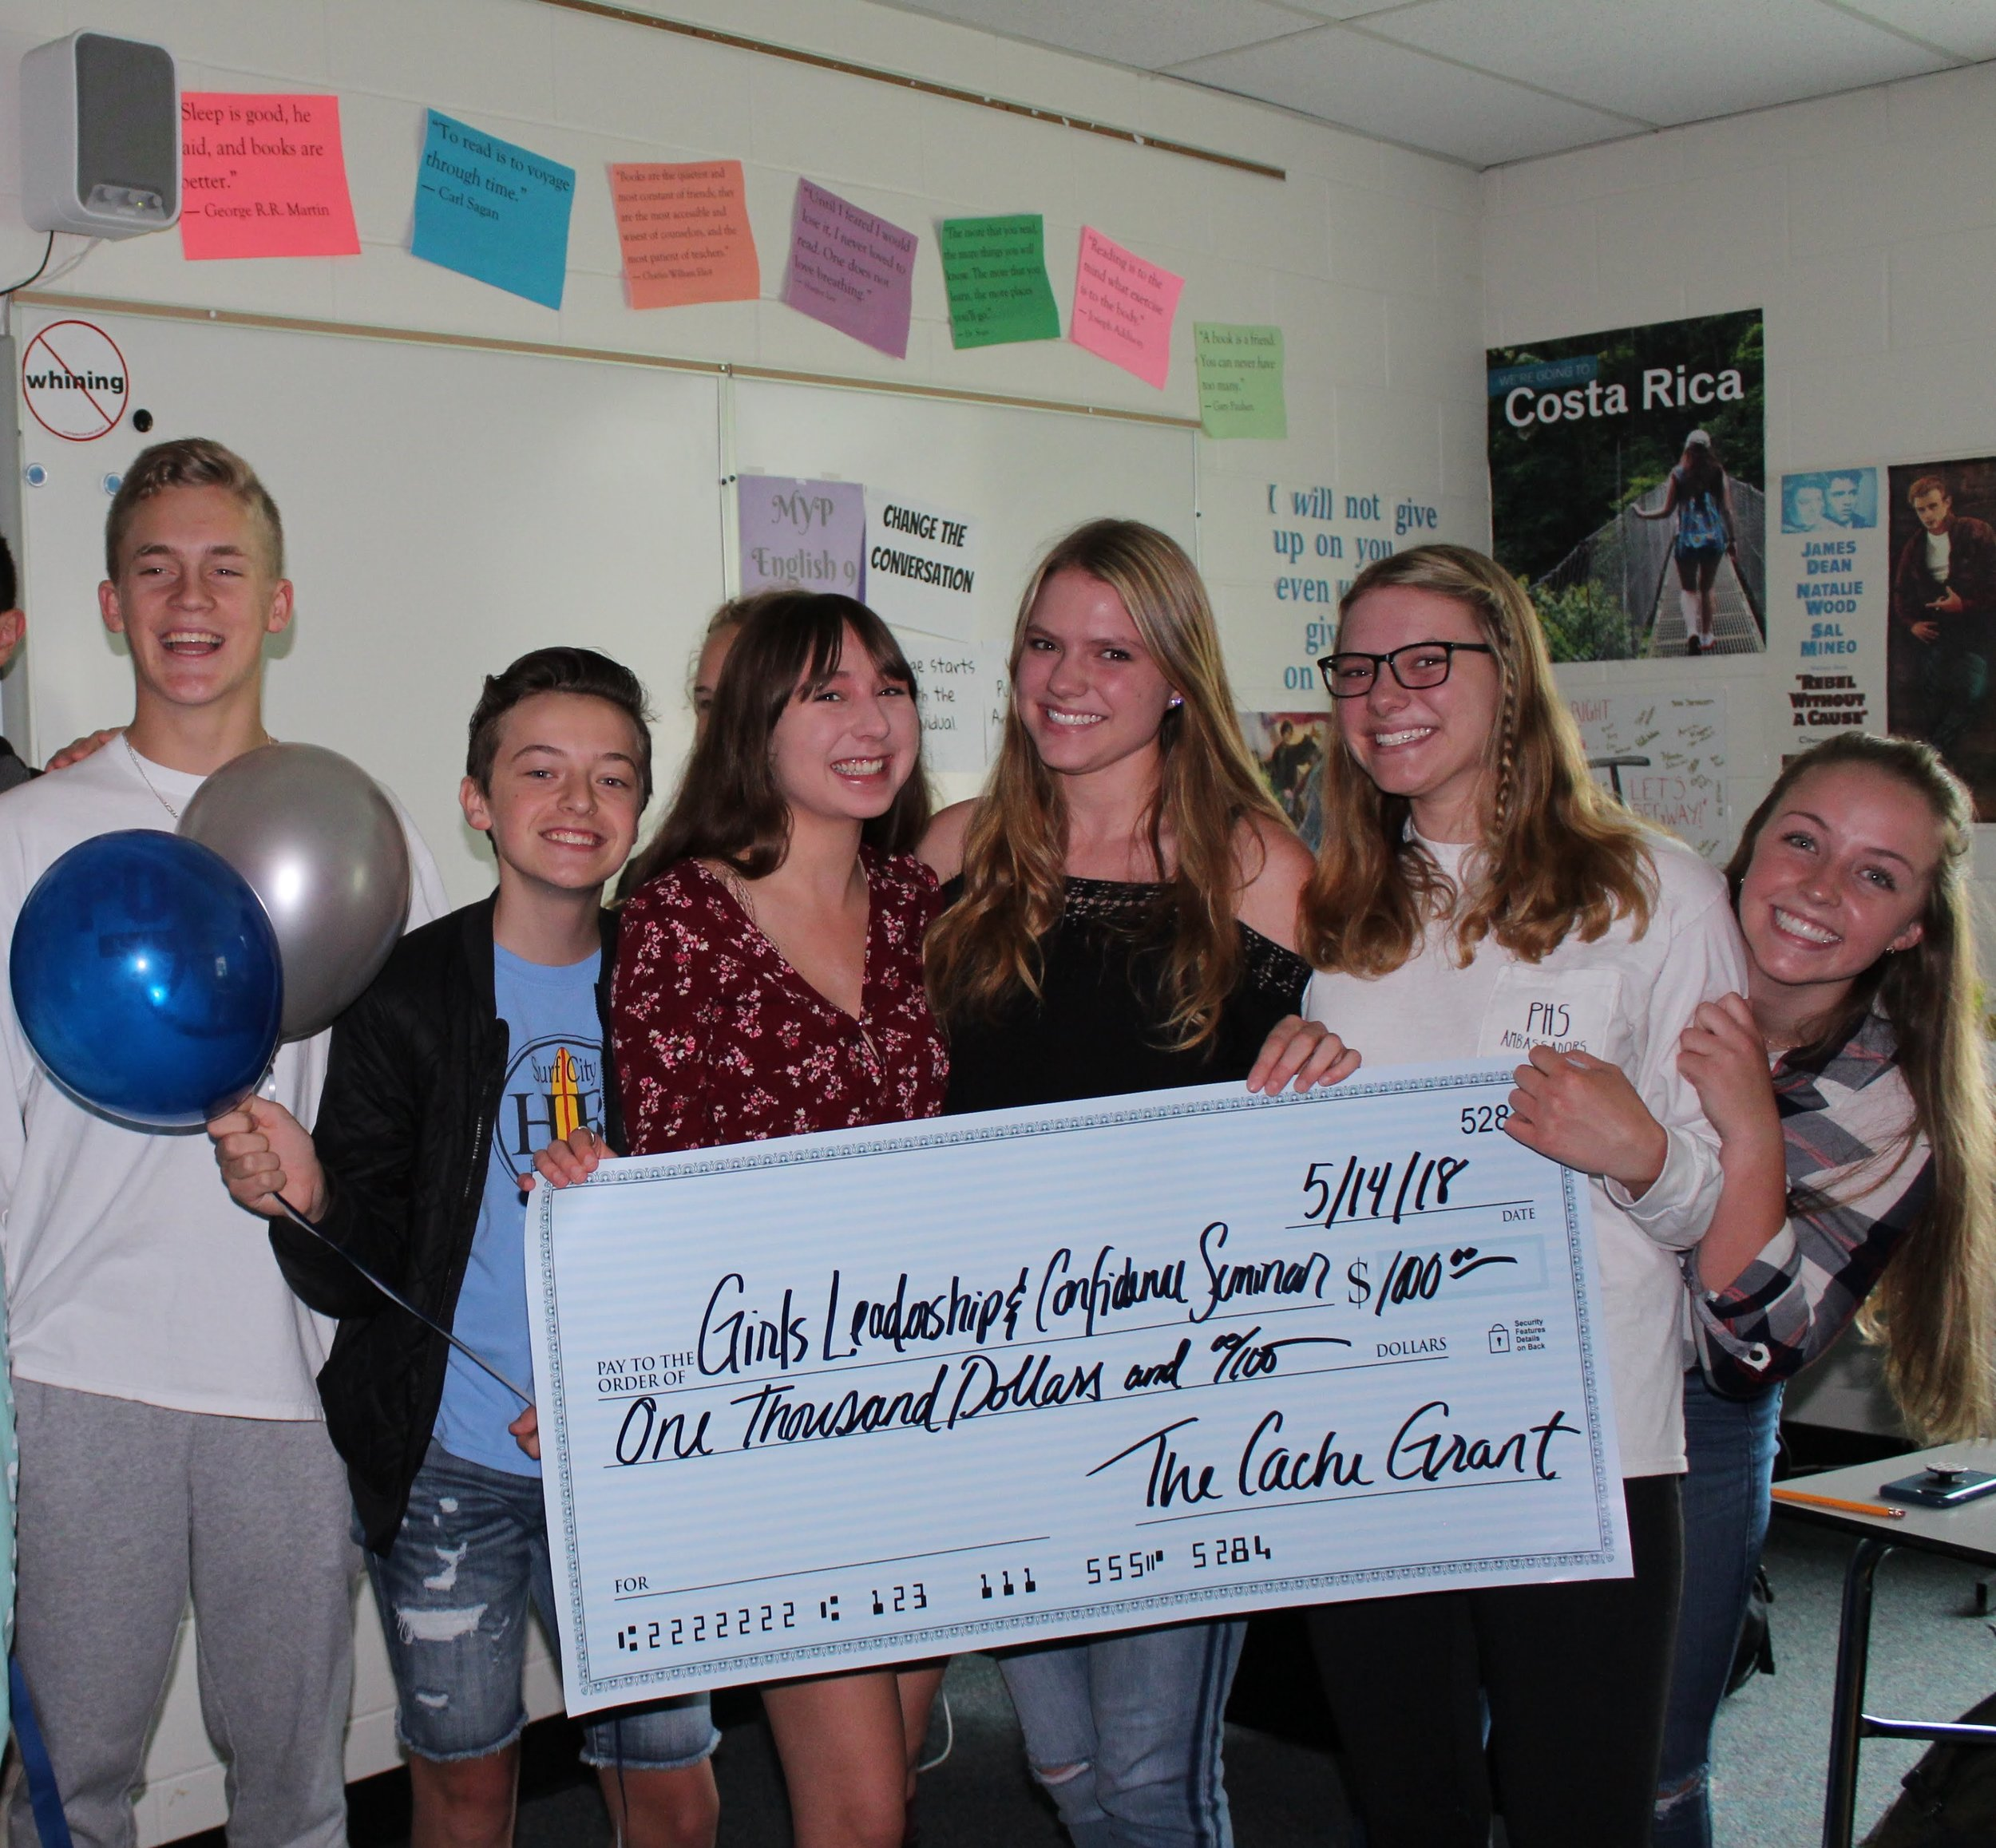 Girl's Leadership & Confidence Seminar - The Girl's Leadership and Confidence Seminar is a student led group that goes into middle schools to teach young middle school girls the importance of self confidence and women's empowerment. Funds from the Cache Grant will help with costs and expenses needed to run the seminar.